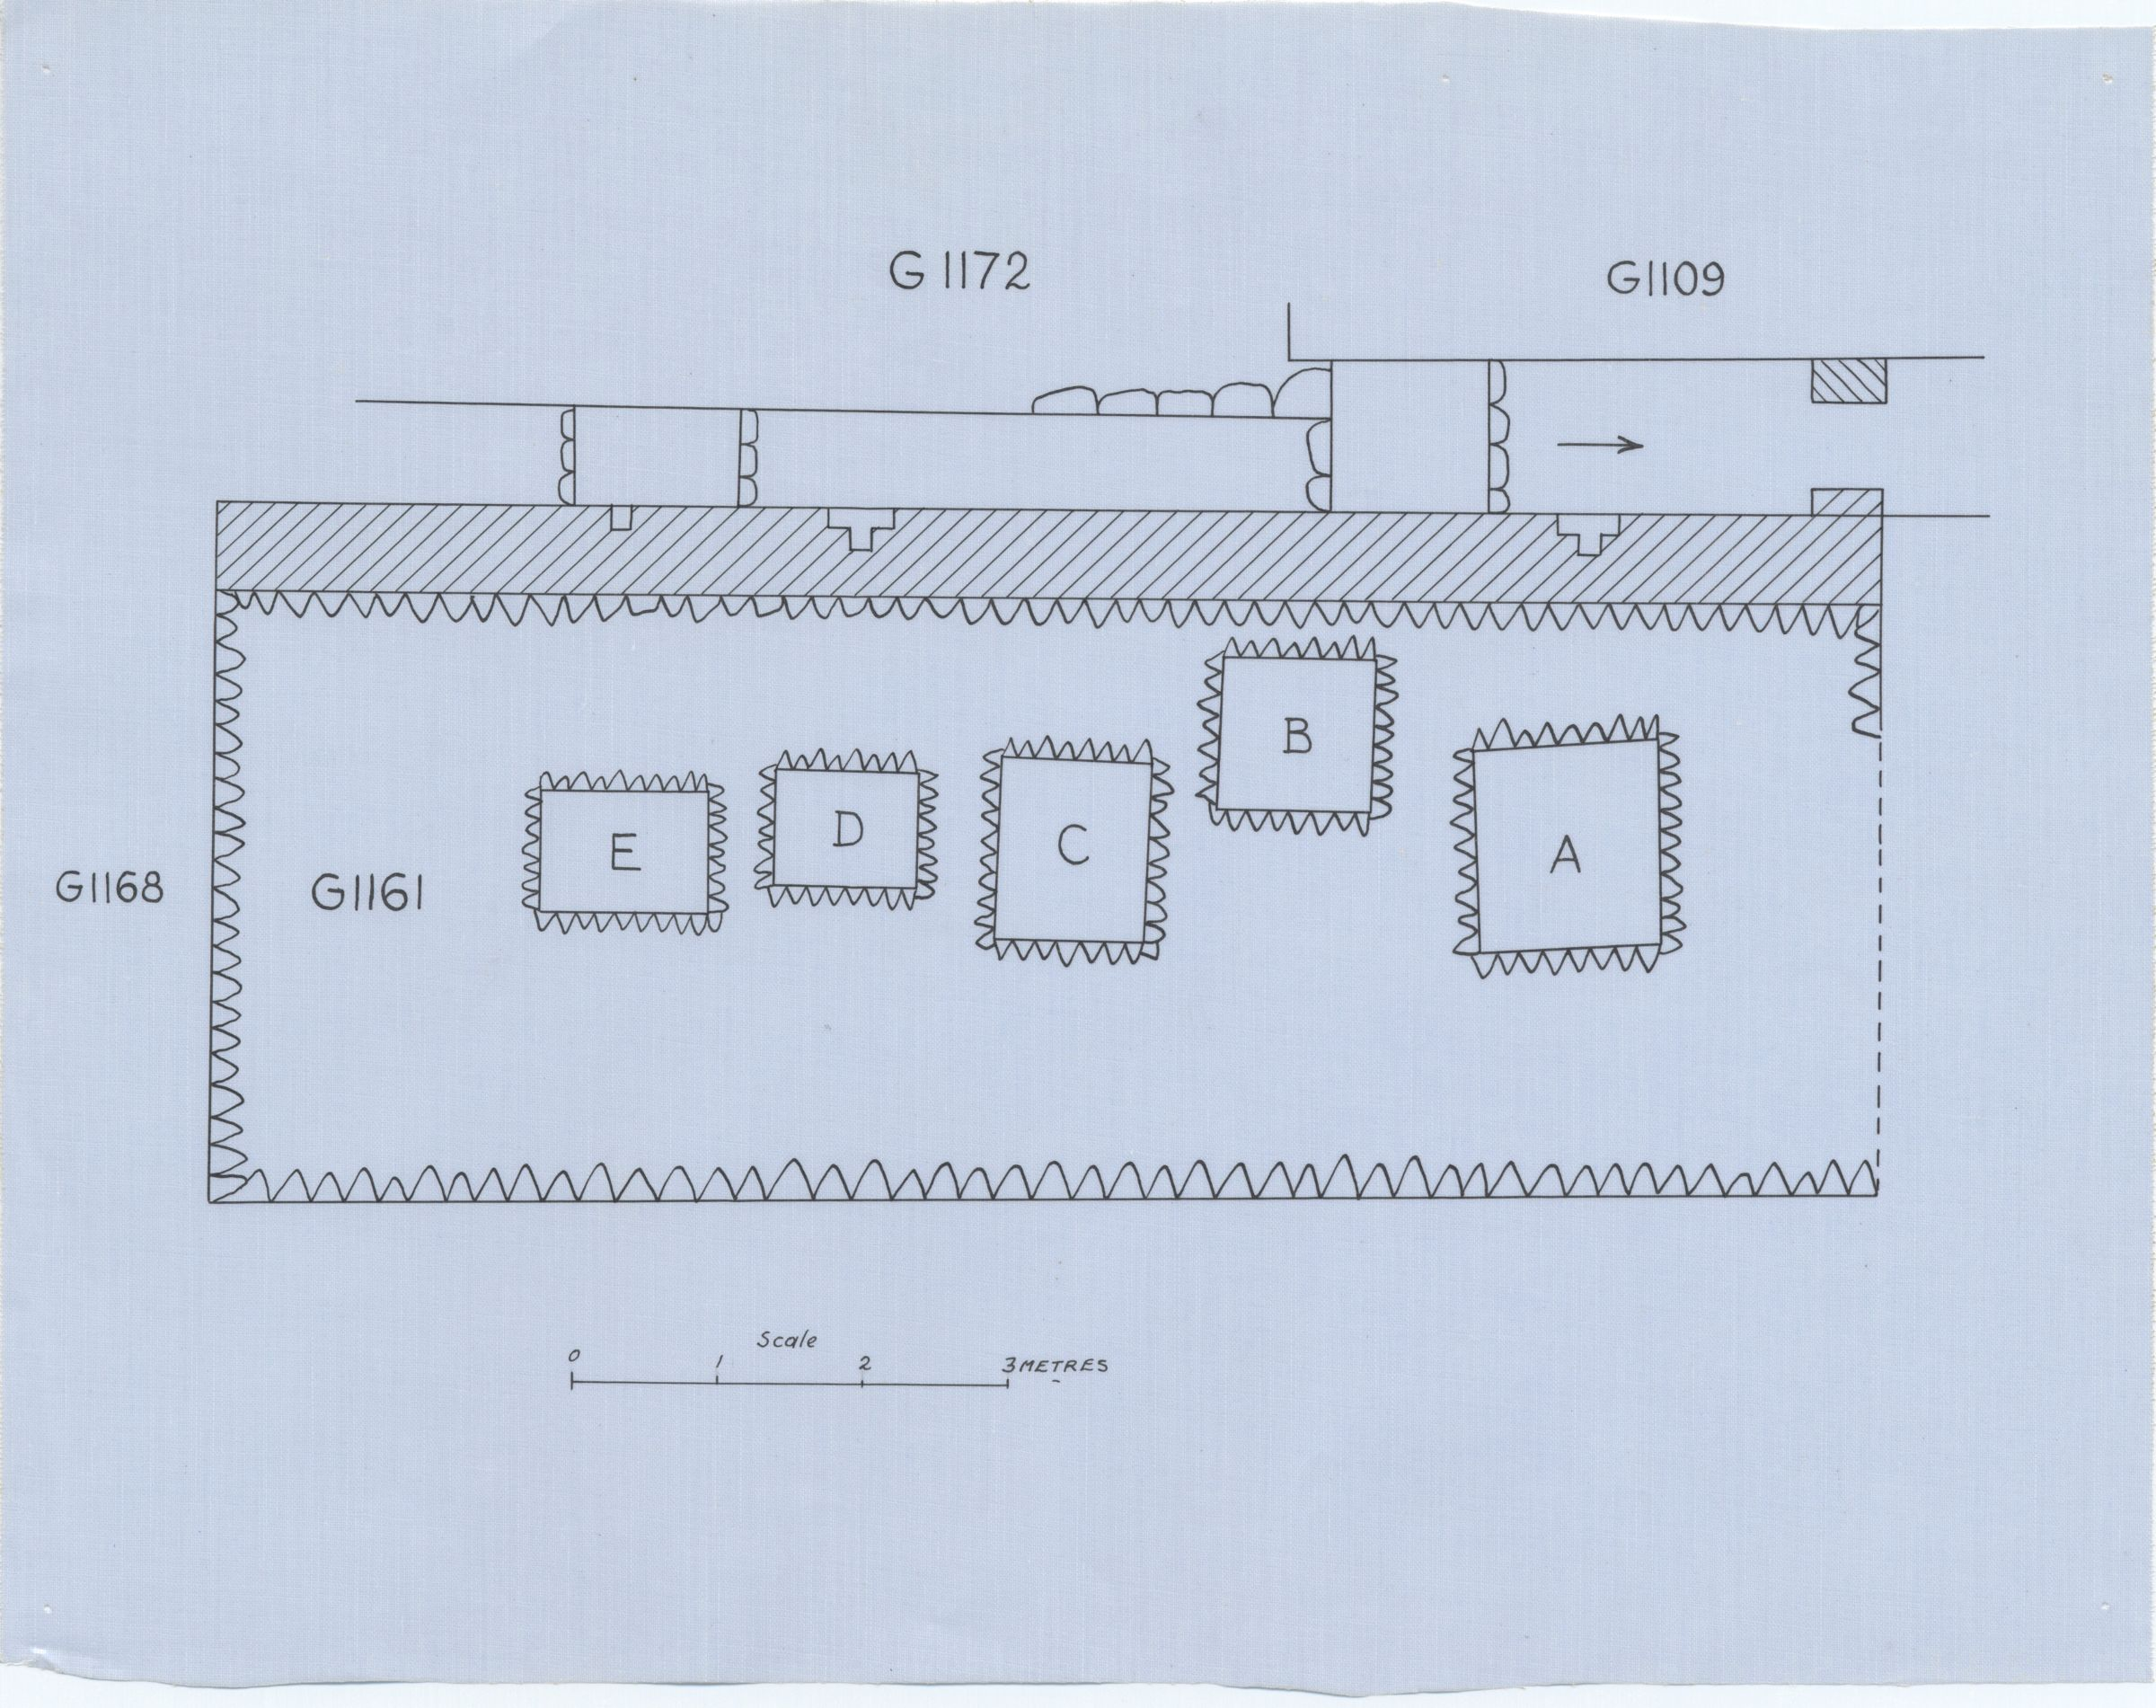 Maps and plans: Plan of G 1161, with position of G 1109 and G 1162+1172